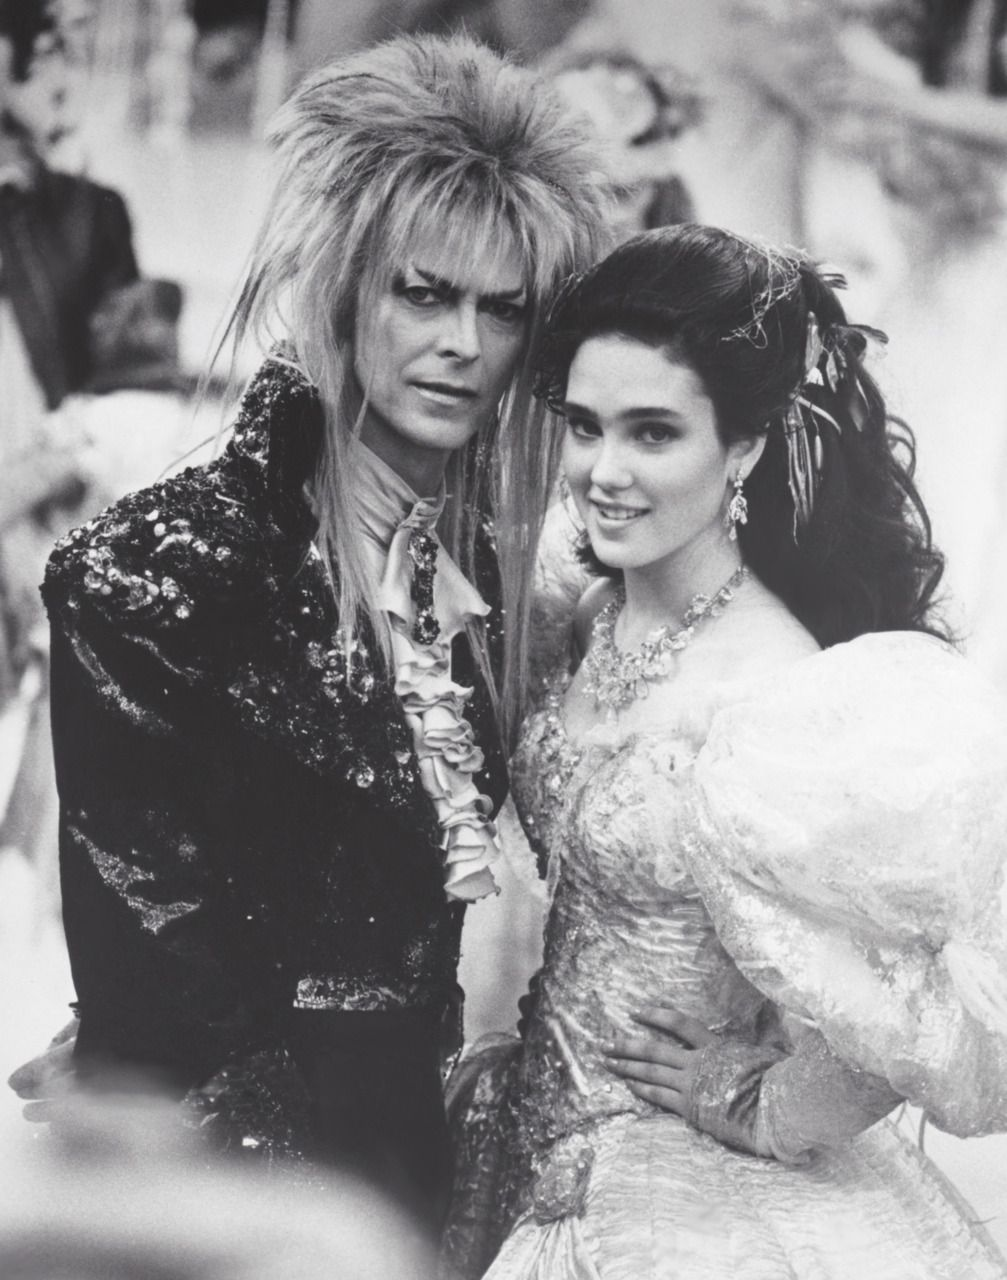 1986 - David Bowie as Jareth and Jennifer Connelly as ... Labyrinth Cast